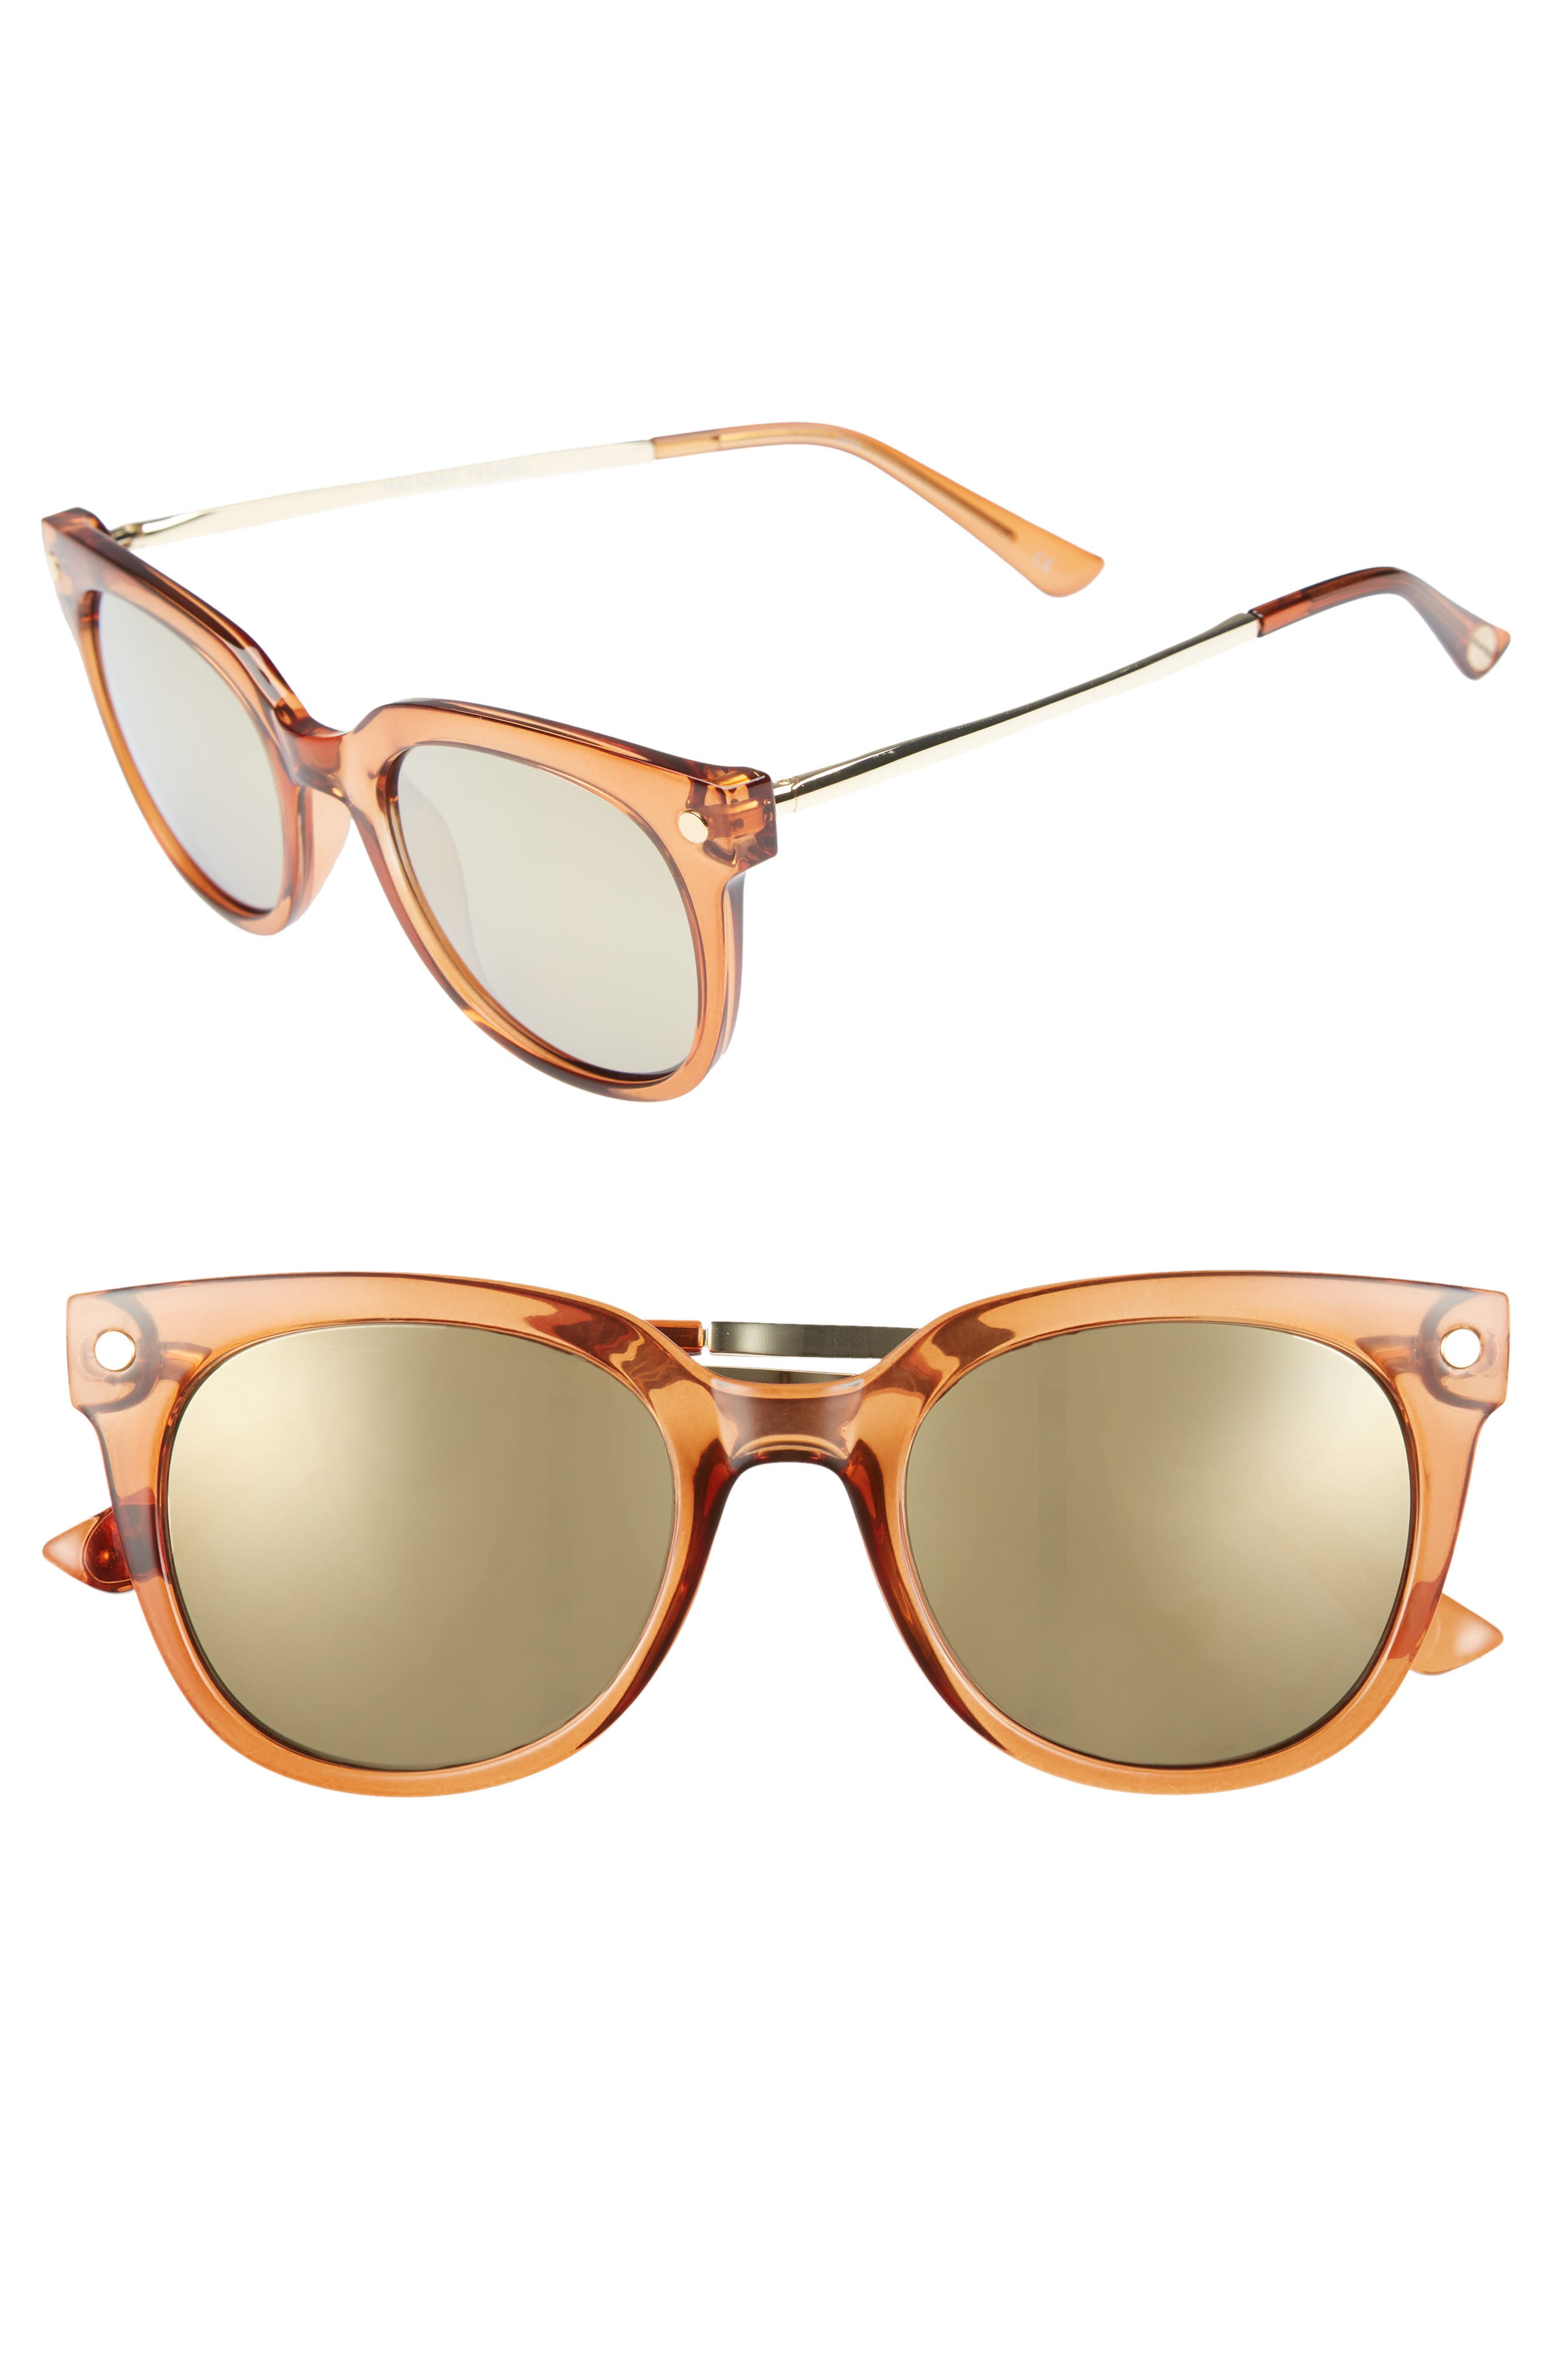 Malabar 52mm Sunglasses,                         Main,                         color, Maple